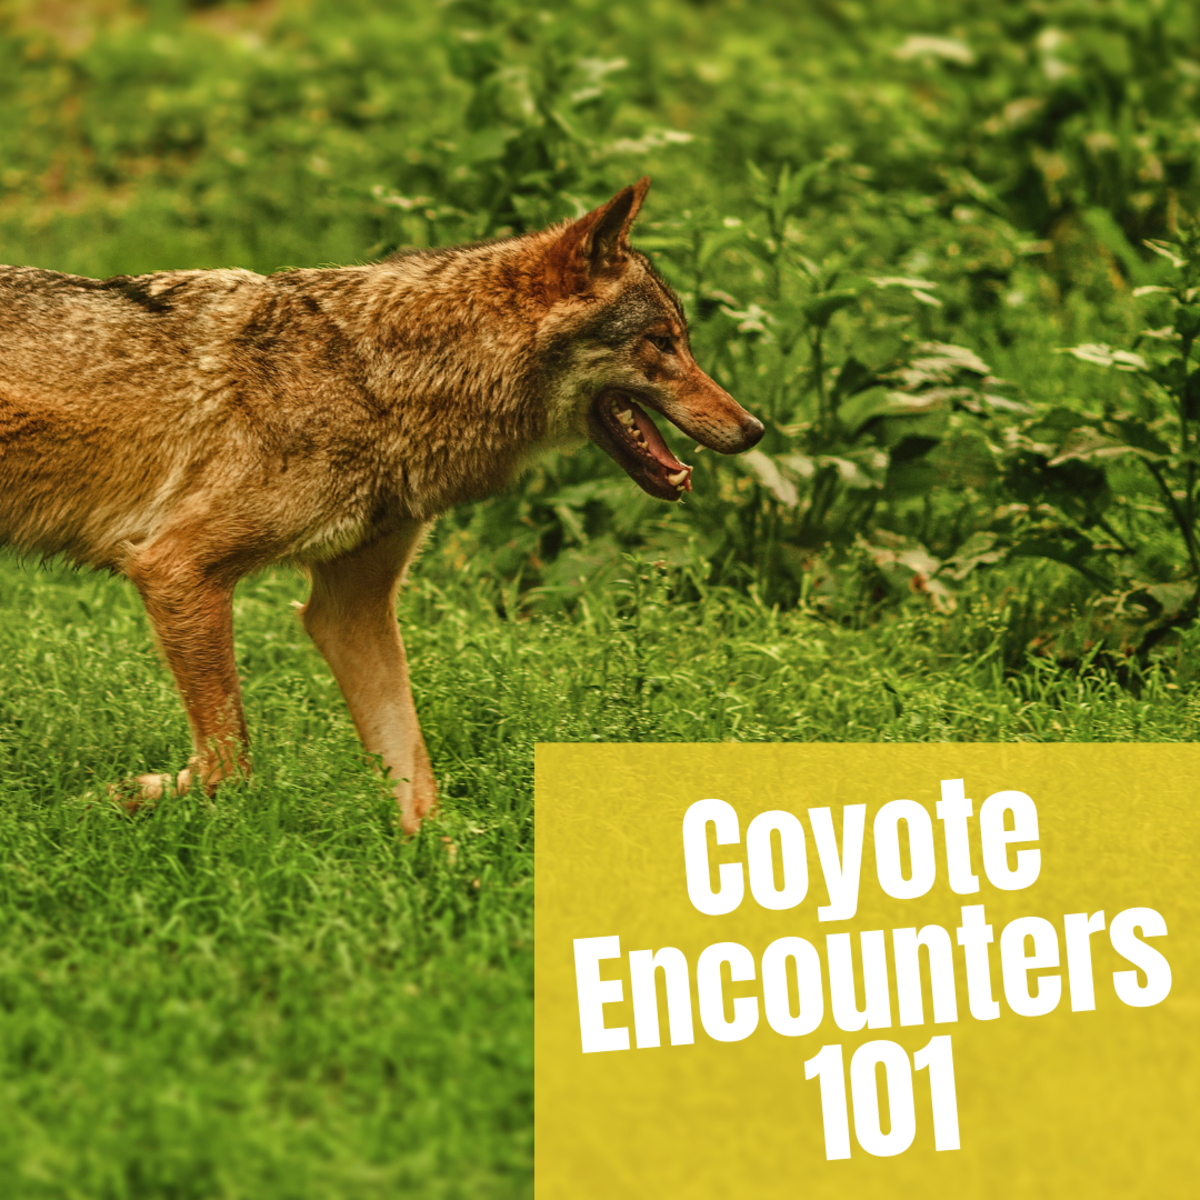 What to Do If You See a Coyote